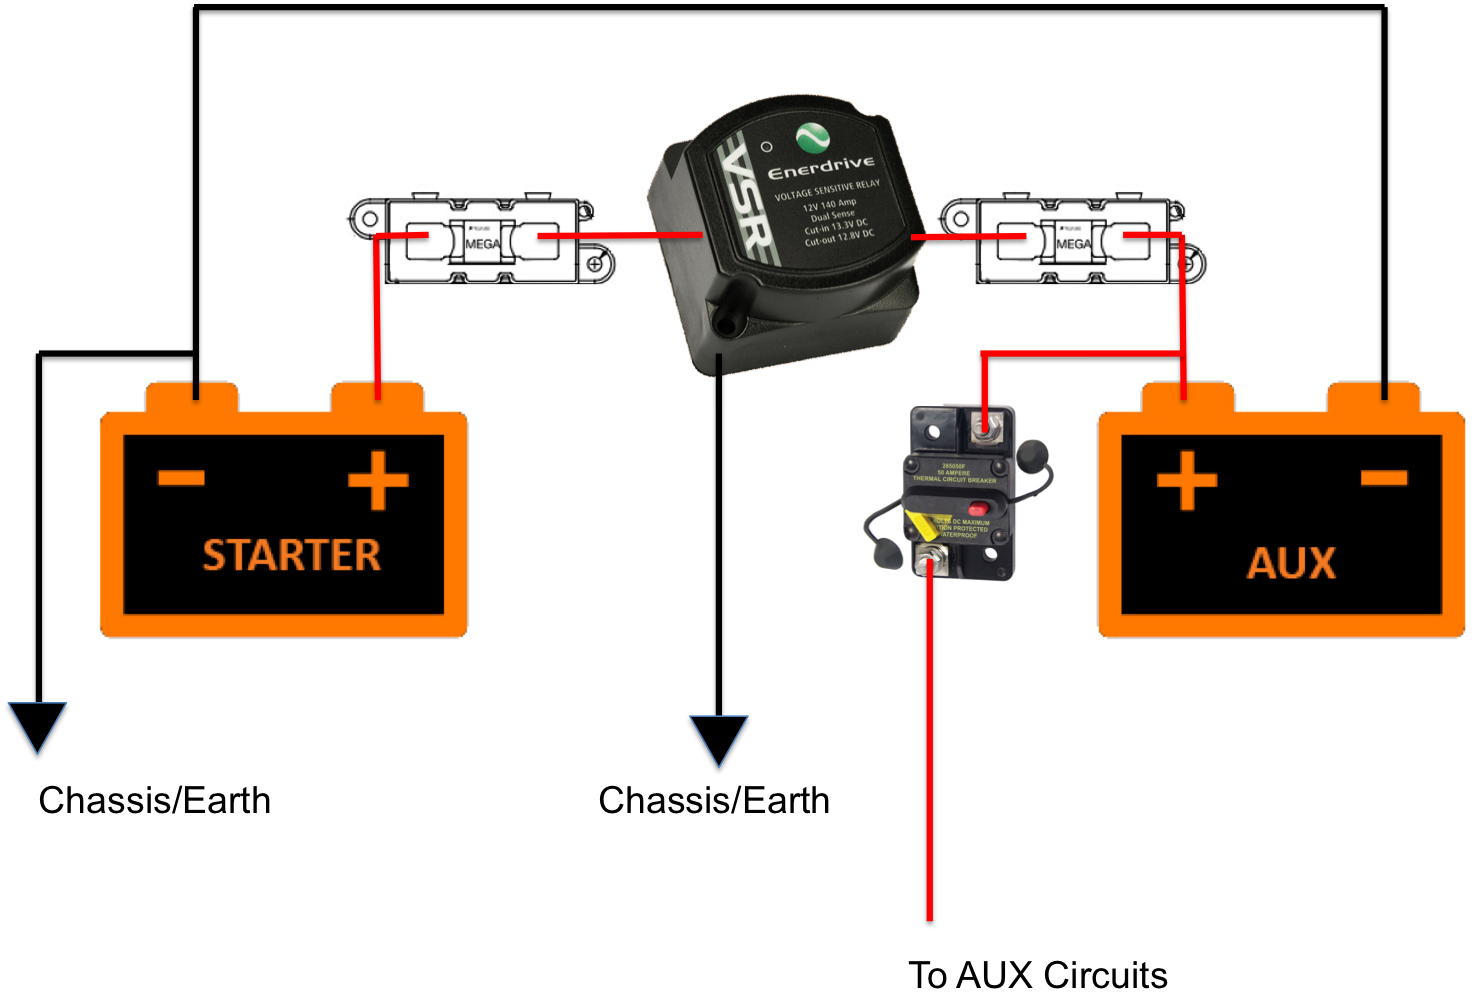 EnerderriveMegafuseBreaker install guides solid kit voltage sensitive relay module wiring diagram at nearapp.co